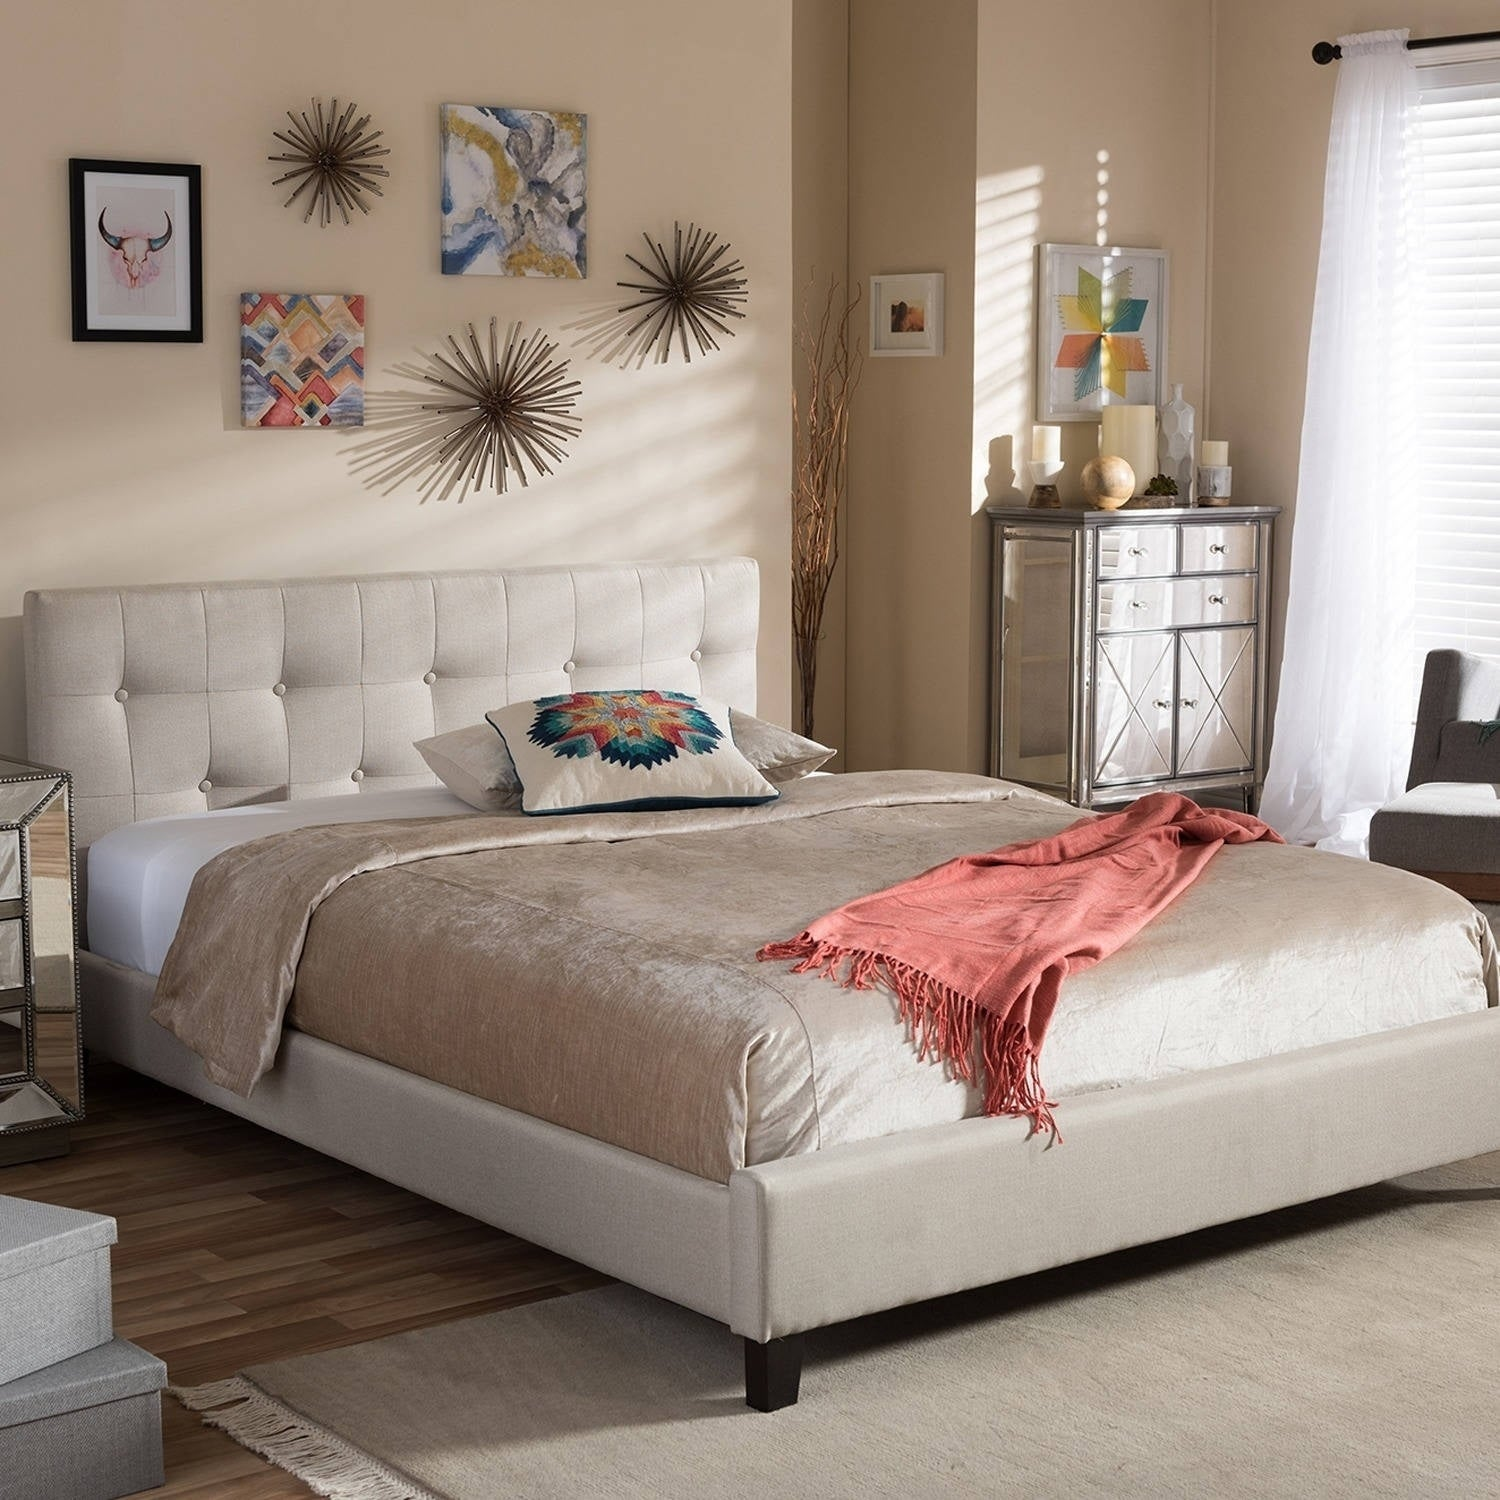 Baxton Annette Light Beige Linen Modern Bed with Covered Buttons at Sears.com